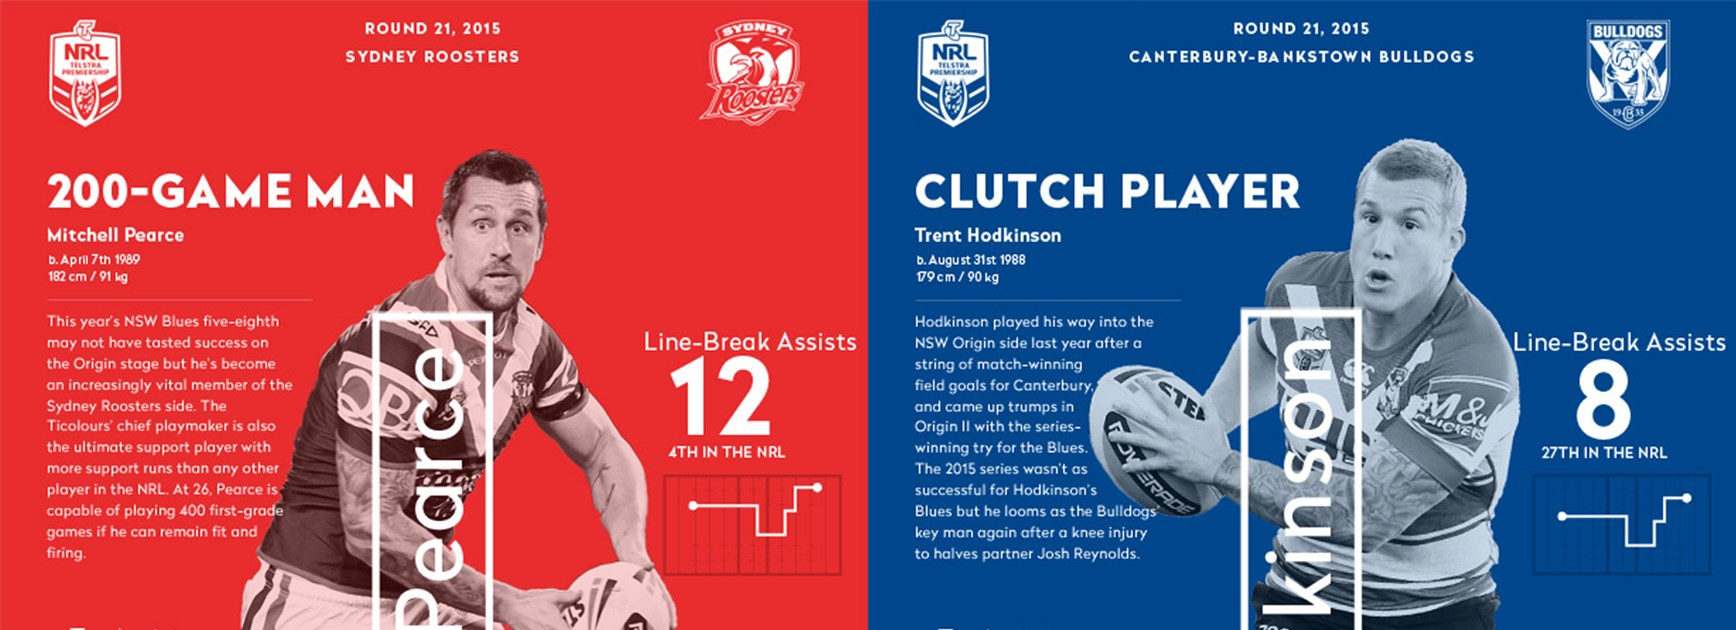 NSW halves Mitchell Pearce and Trent Hodkinson will line up against each other at club level on Friday night.